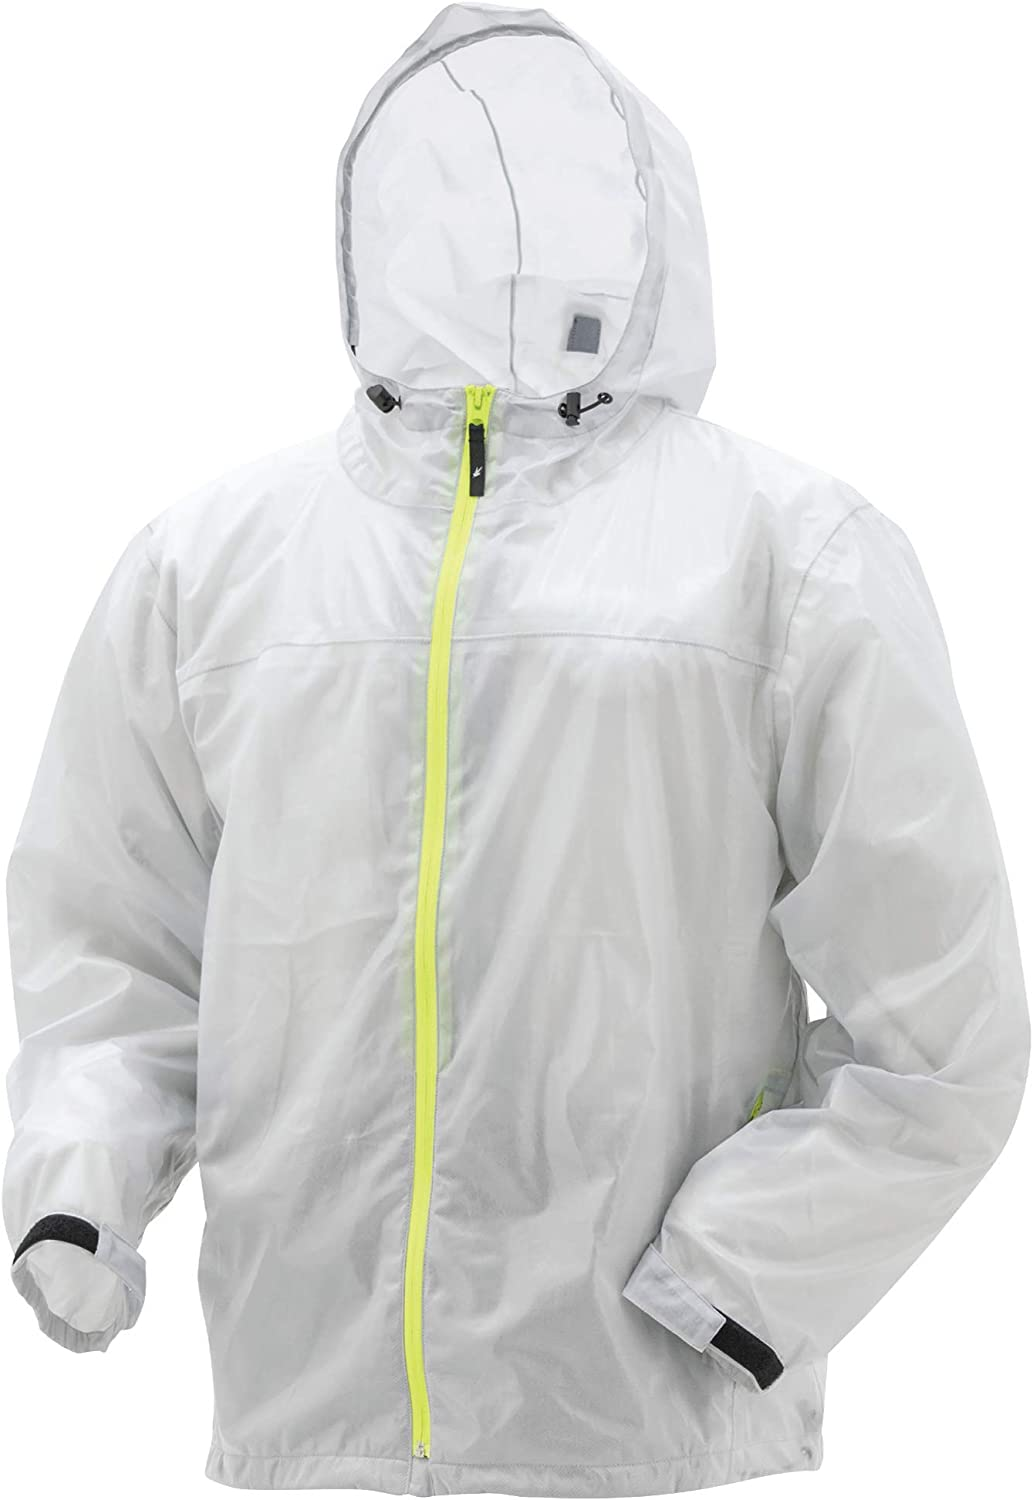 FROGG TOGGS Women's Xtreme Lite Packable Waterproof Breathable Rain Jacket: Clothing